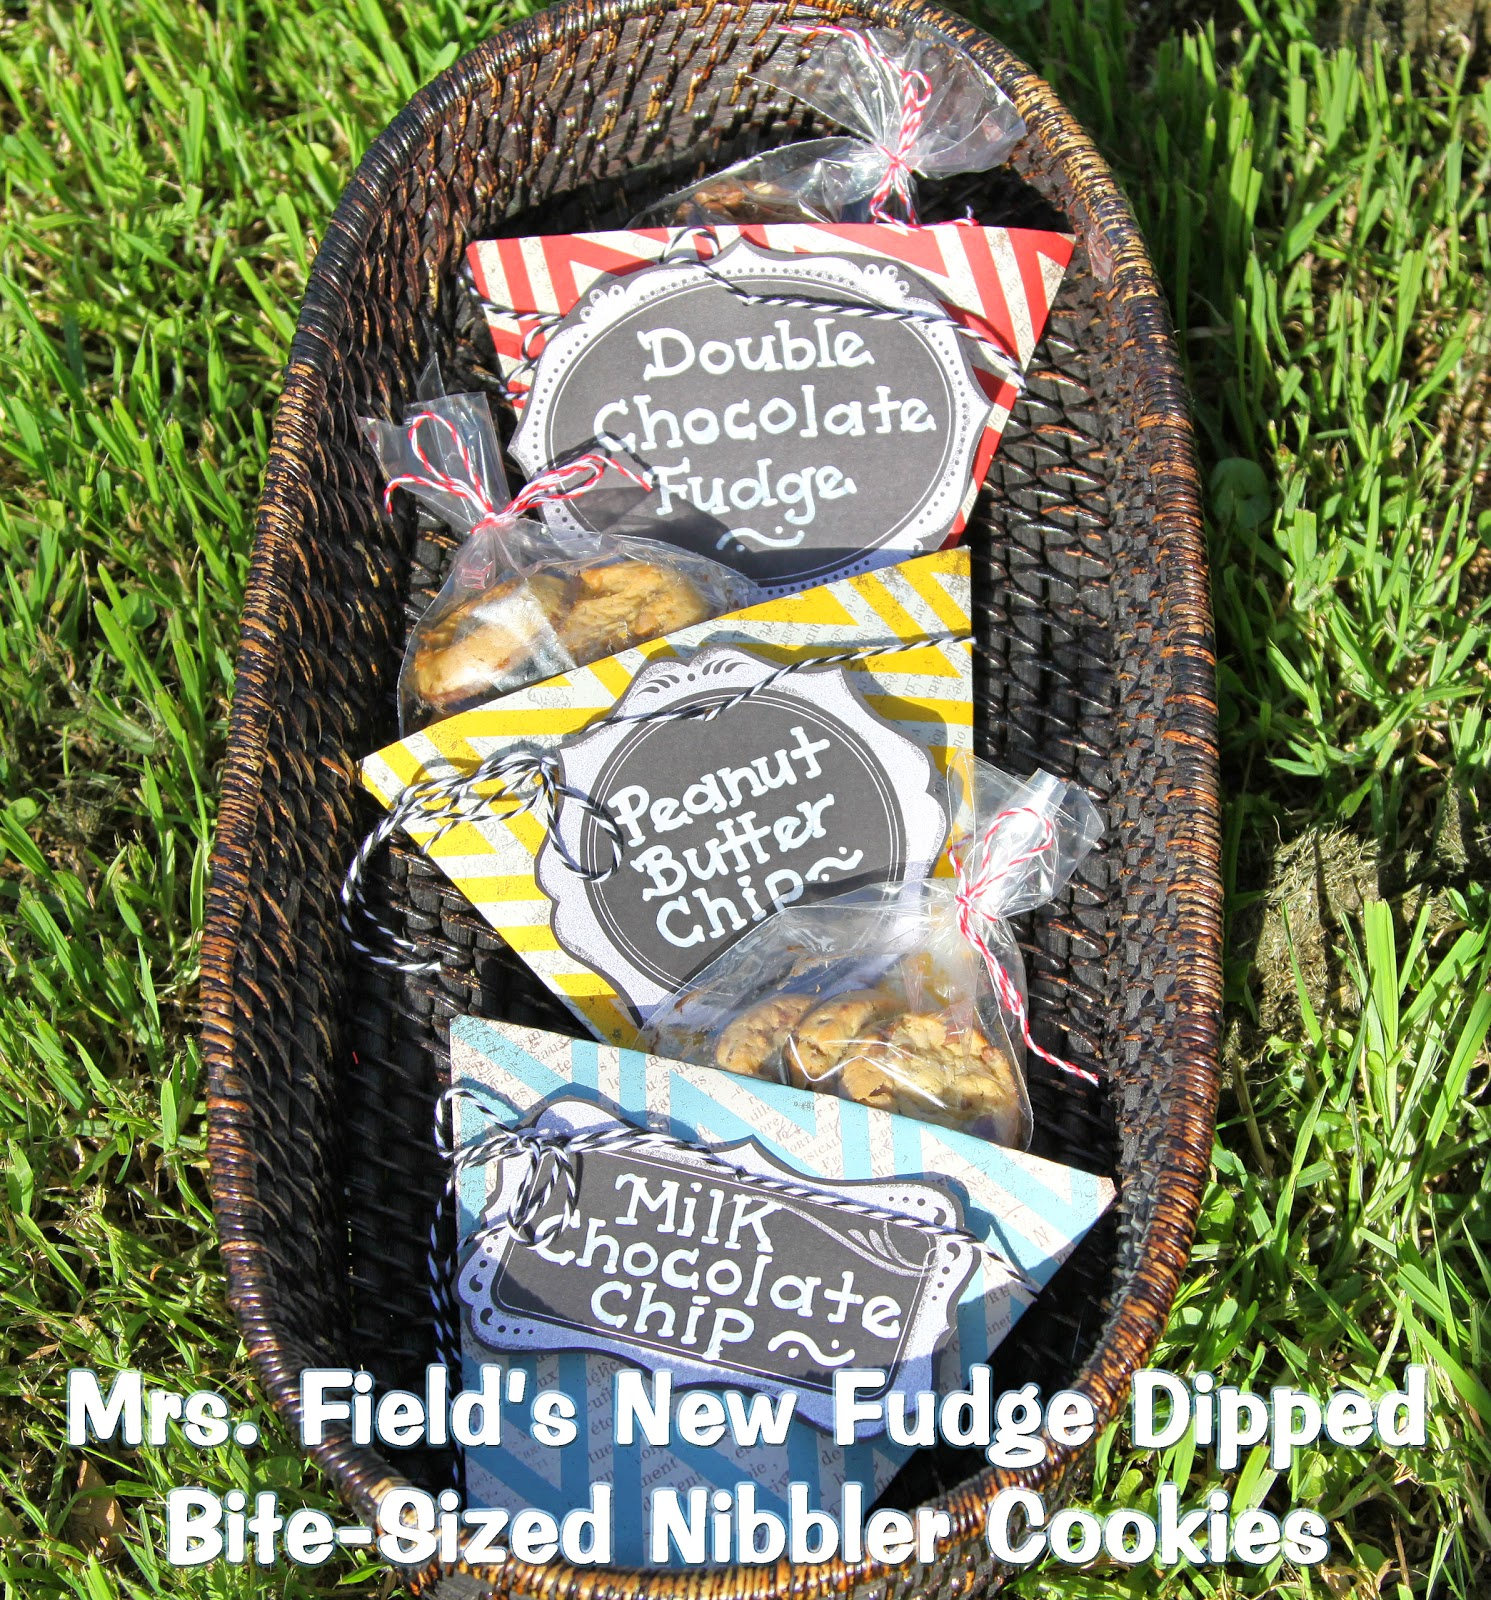 Mrs. Field's New Fudge Dipped Bite-Sized Nibbler Cookie Flavors- soft-baked & addicting!